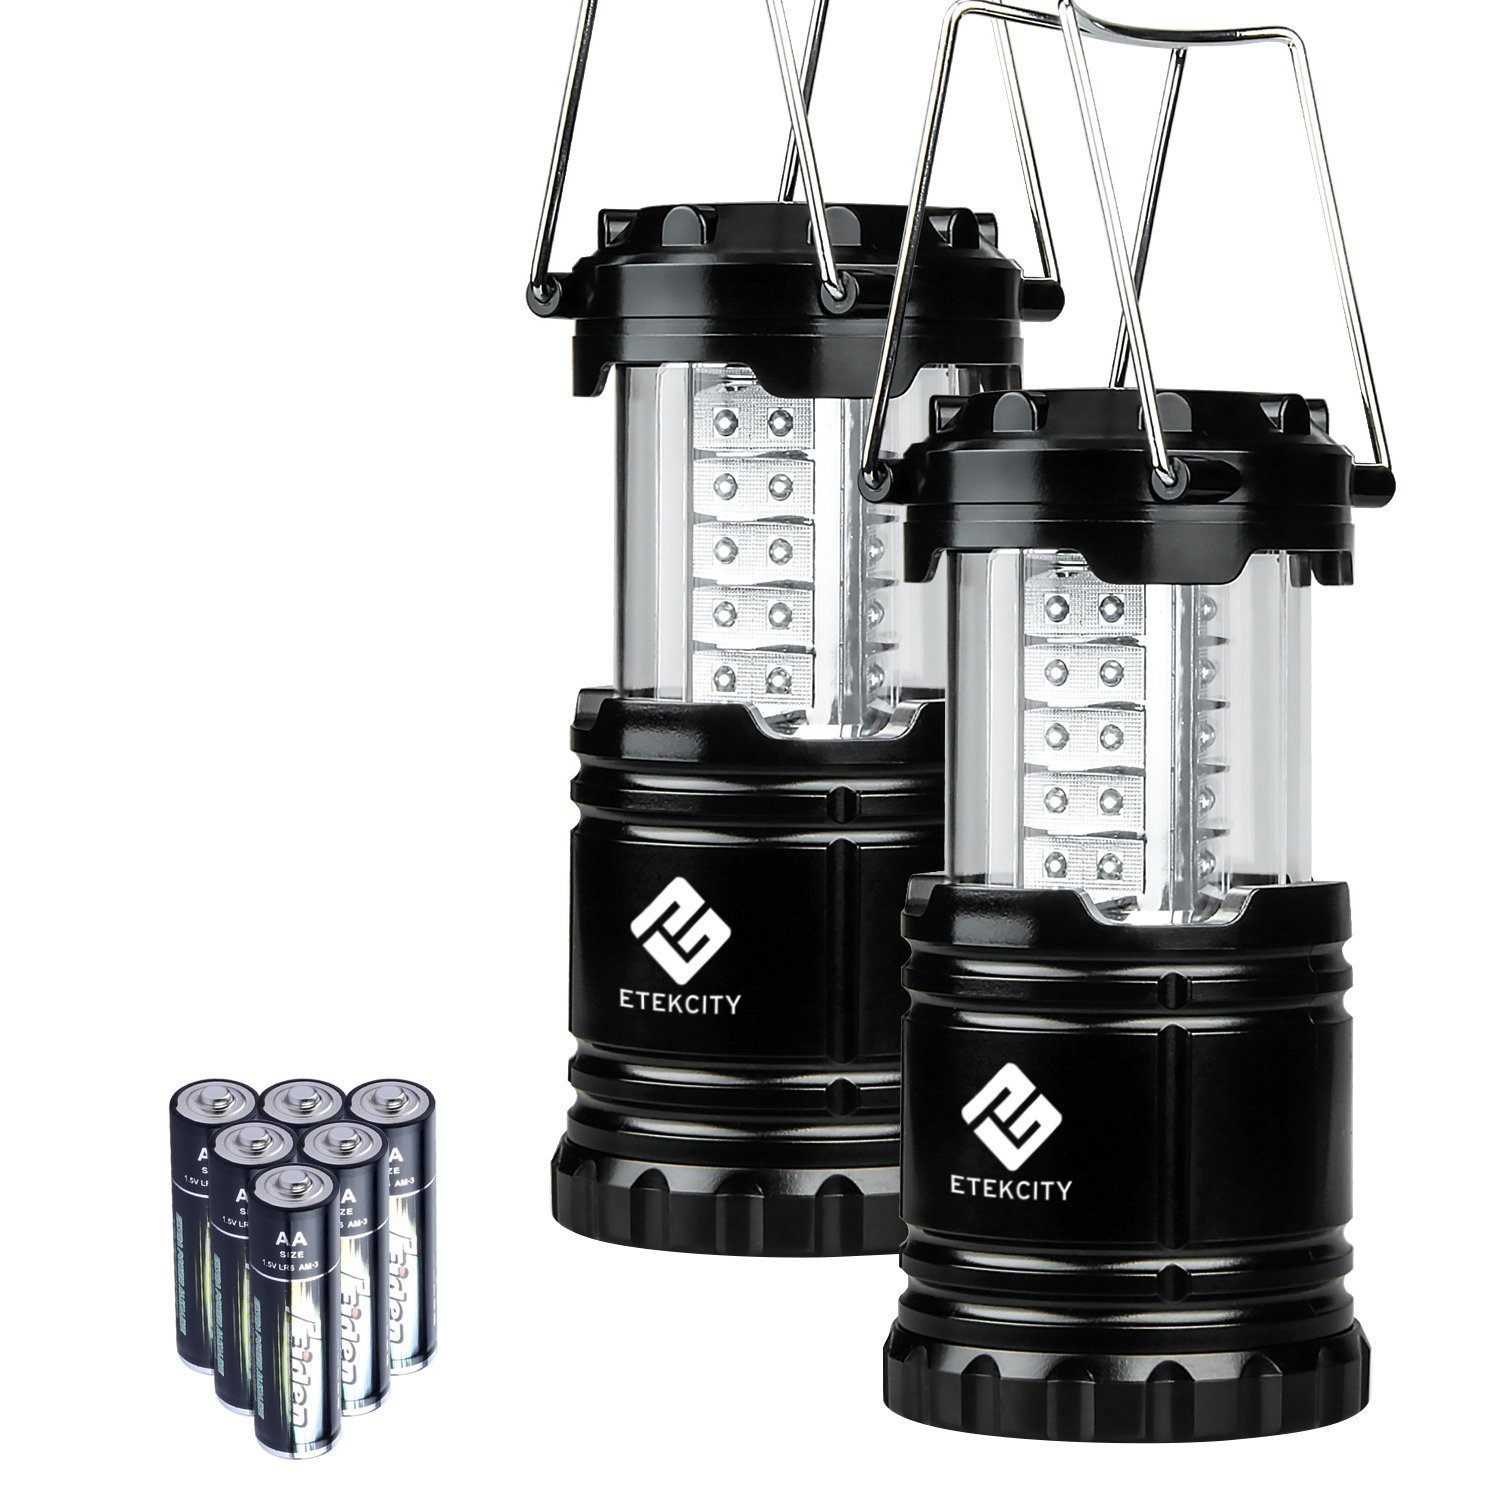 Survival Kit for Emergency Power Outage Etekcity Upgrade 2 Pack LED Camping Lantern with Magnetic Base and Adjustable Brightness Hurricane Batteries Included Storm